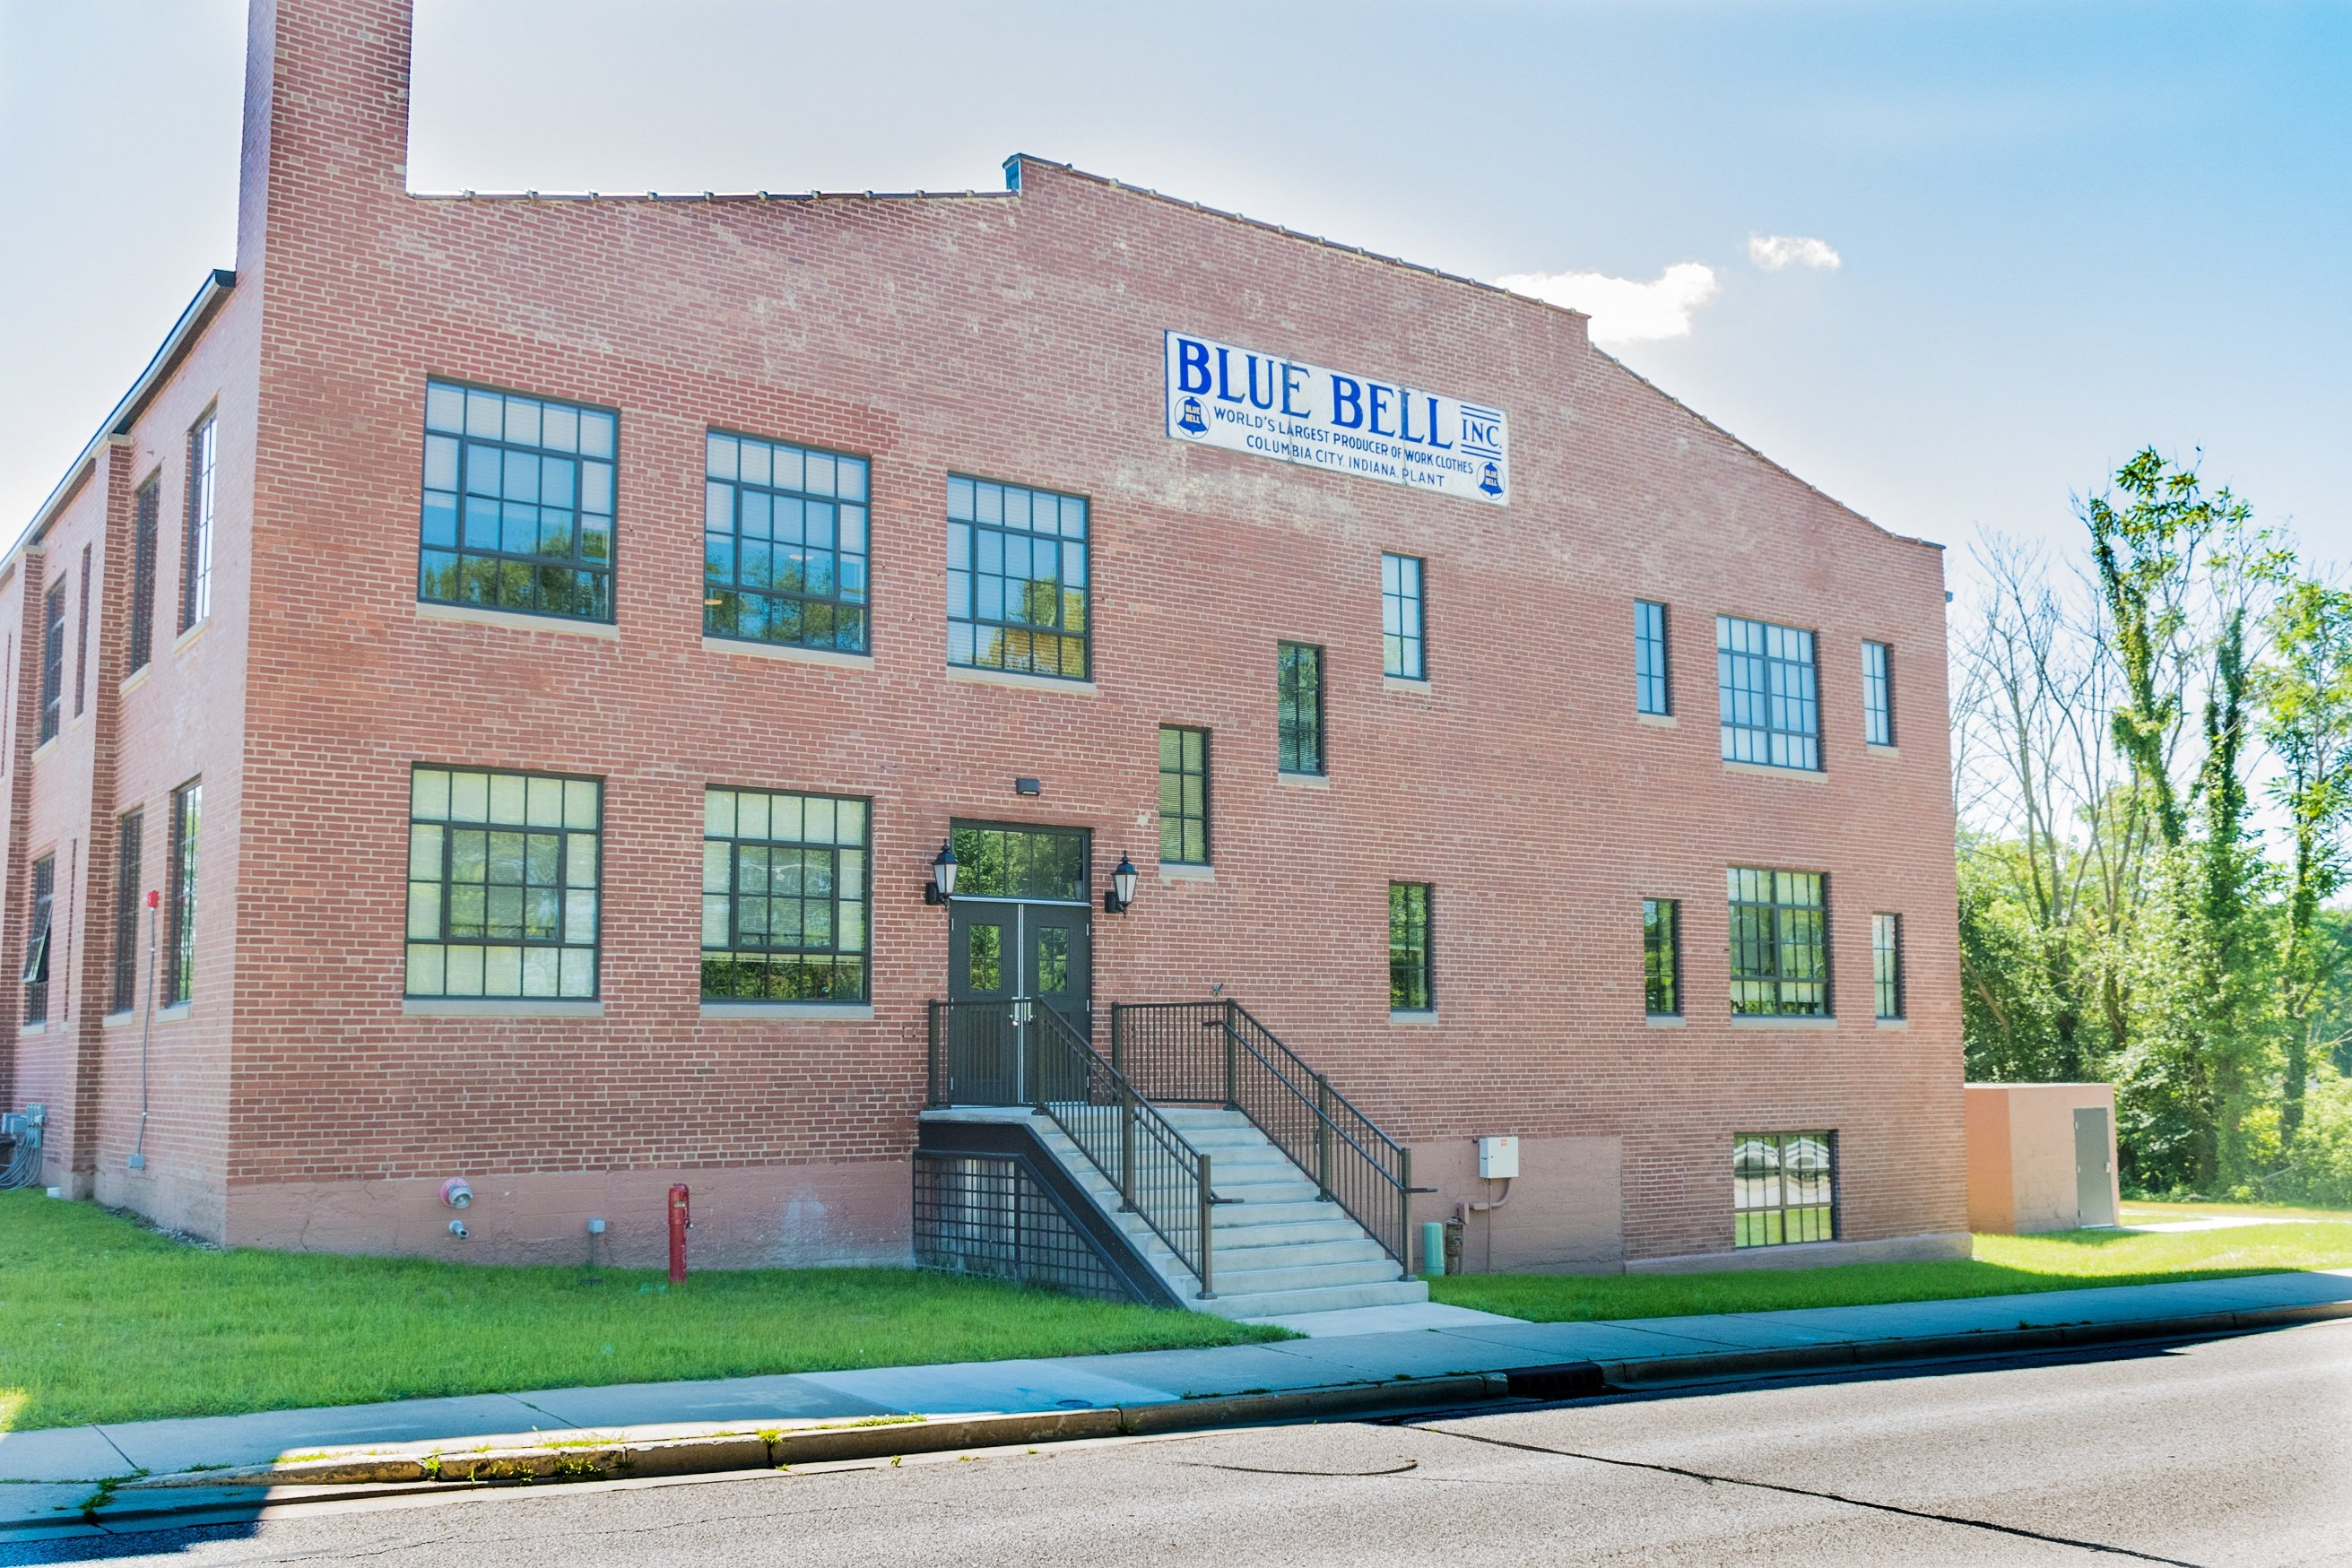 Historic Blue Bell Lofts